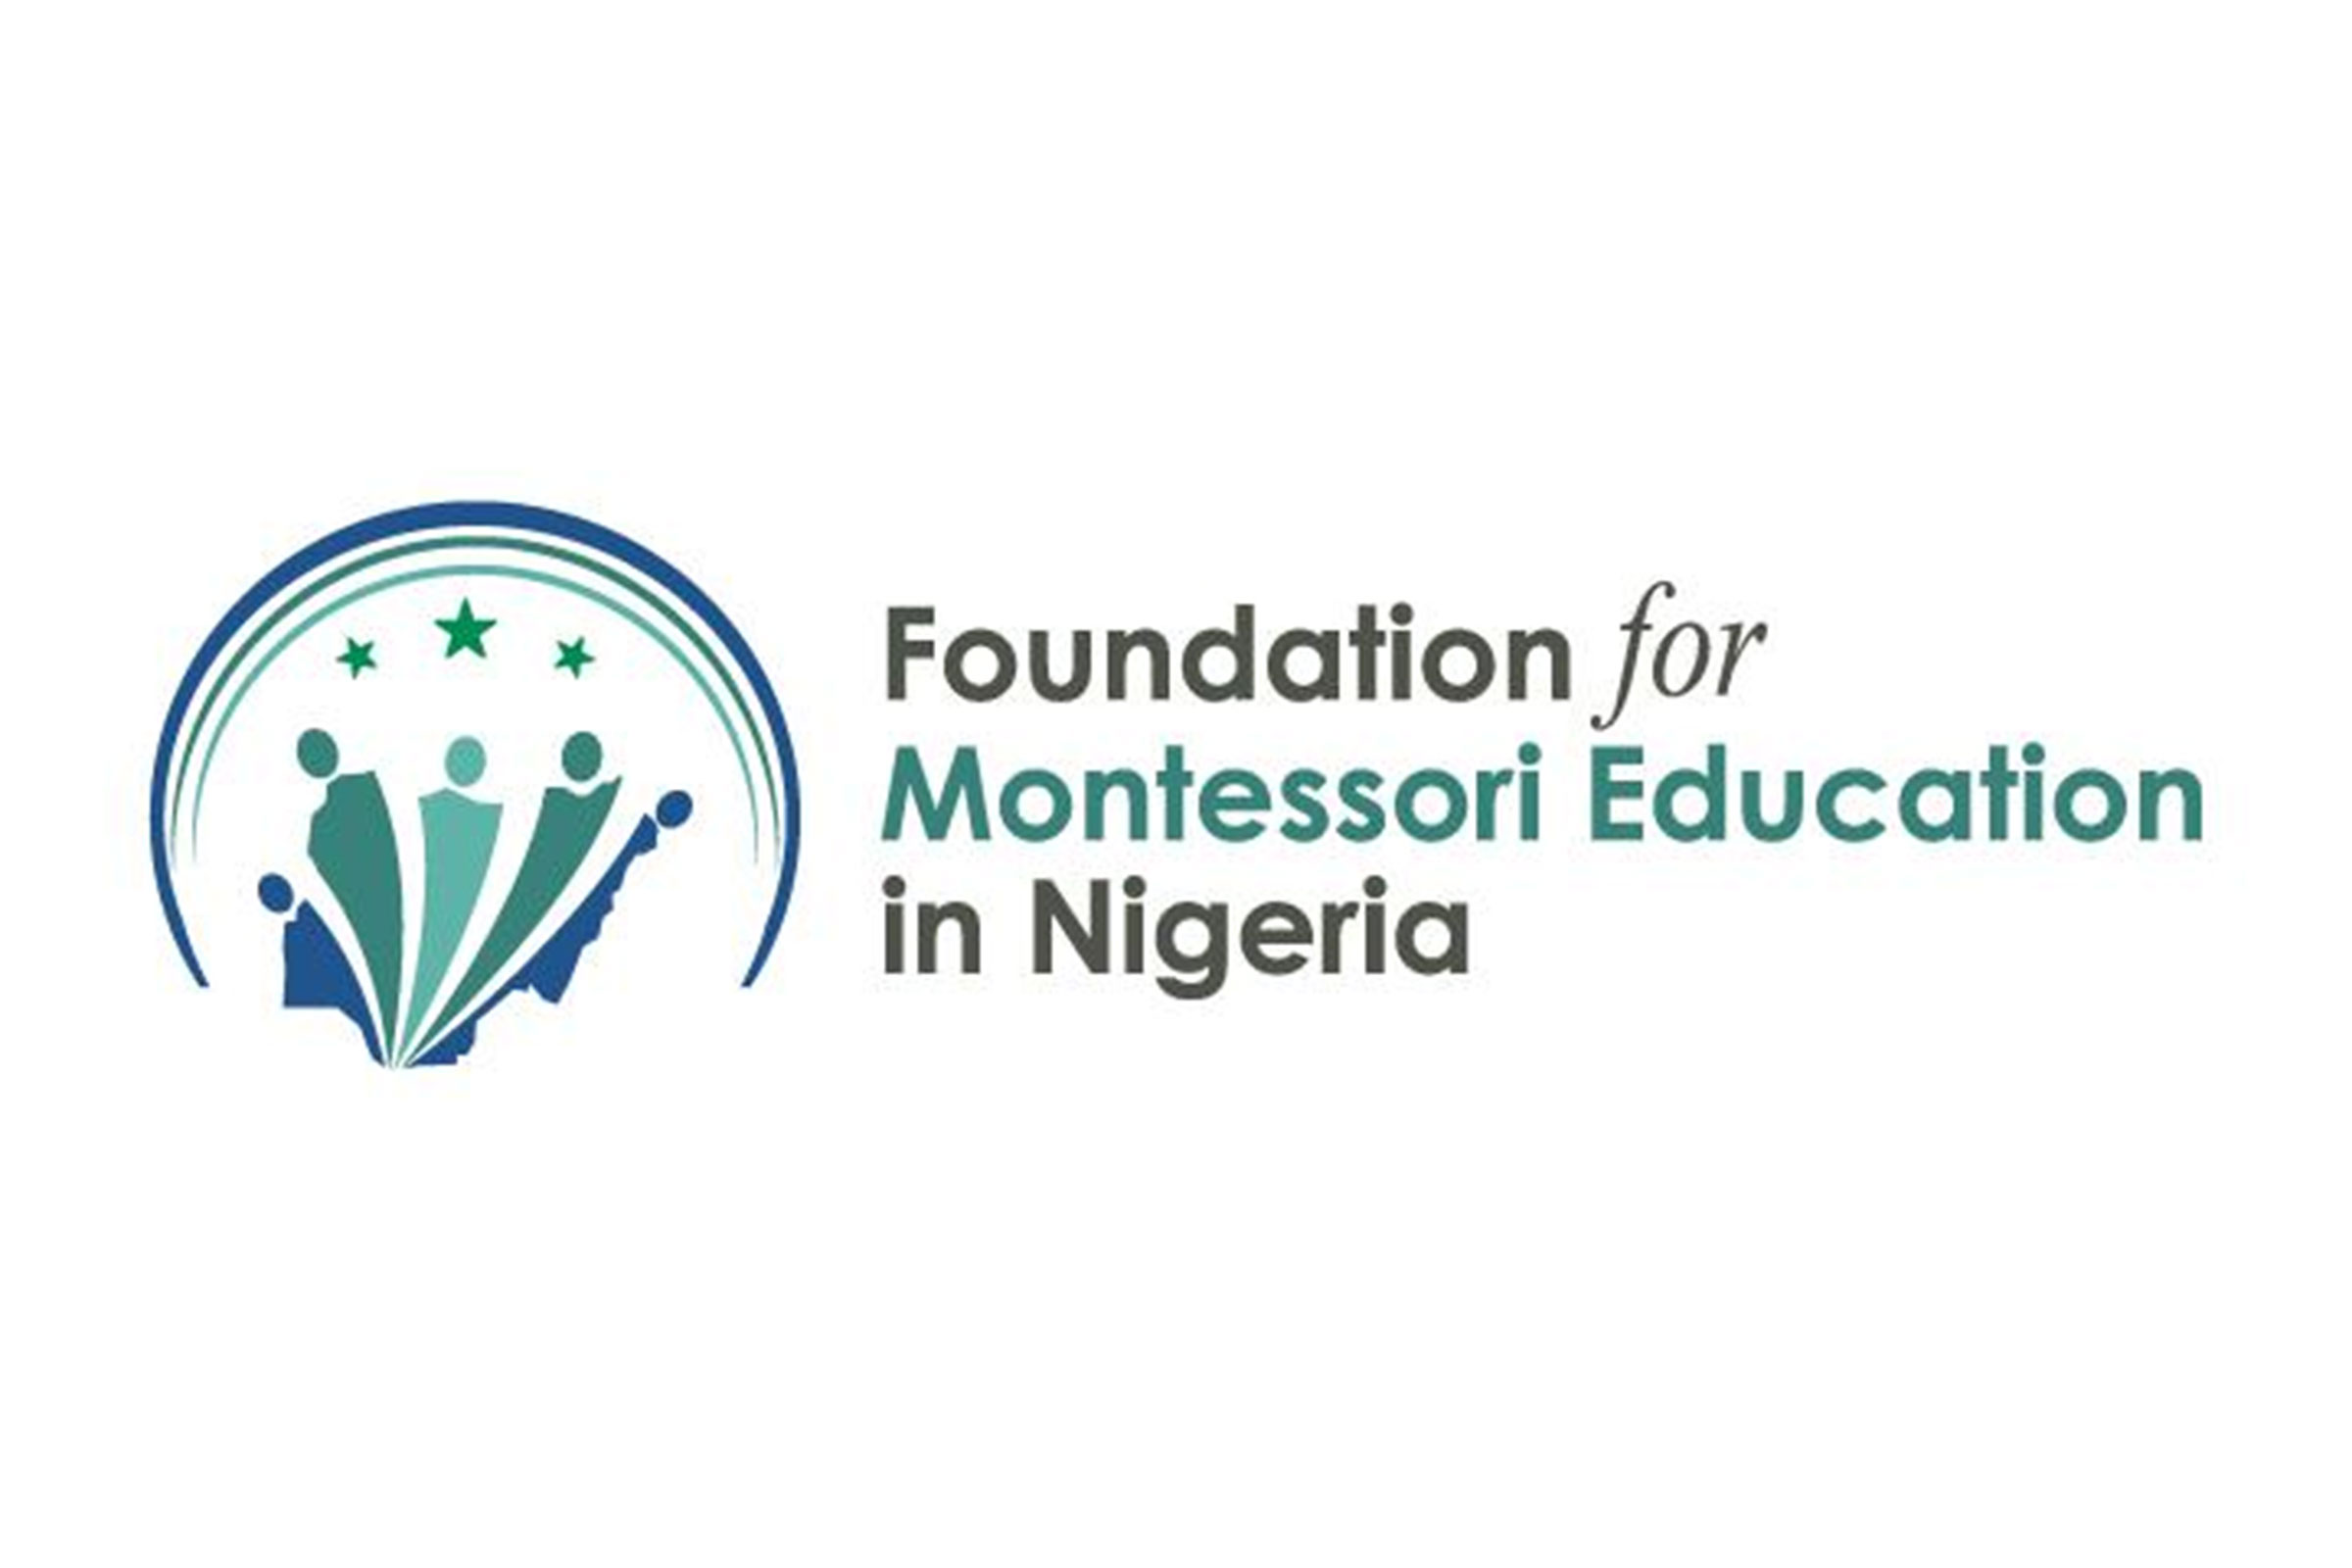 Foundation for Montessori Education in Nigeria logo